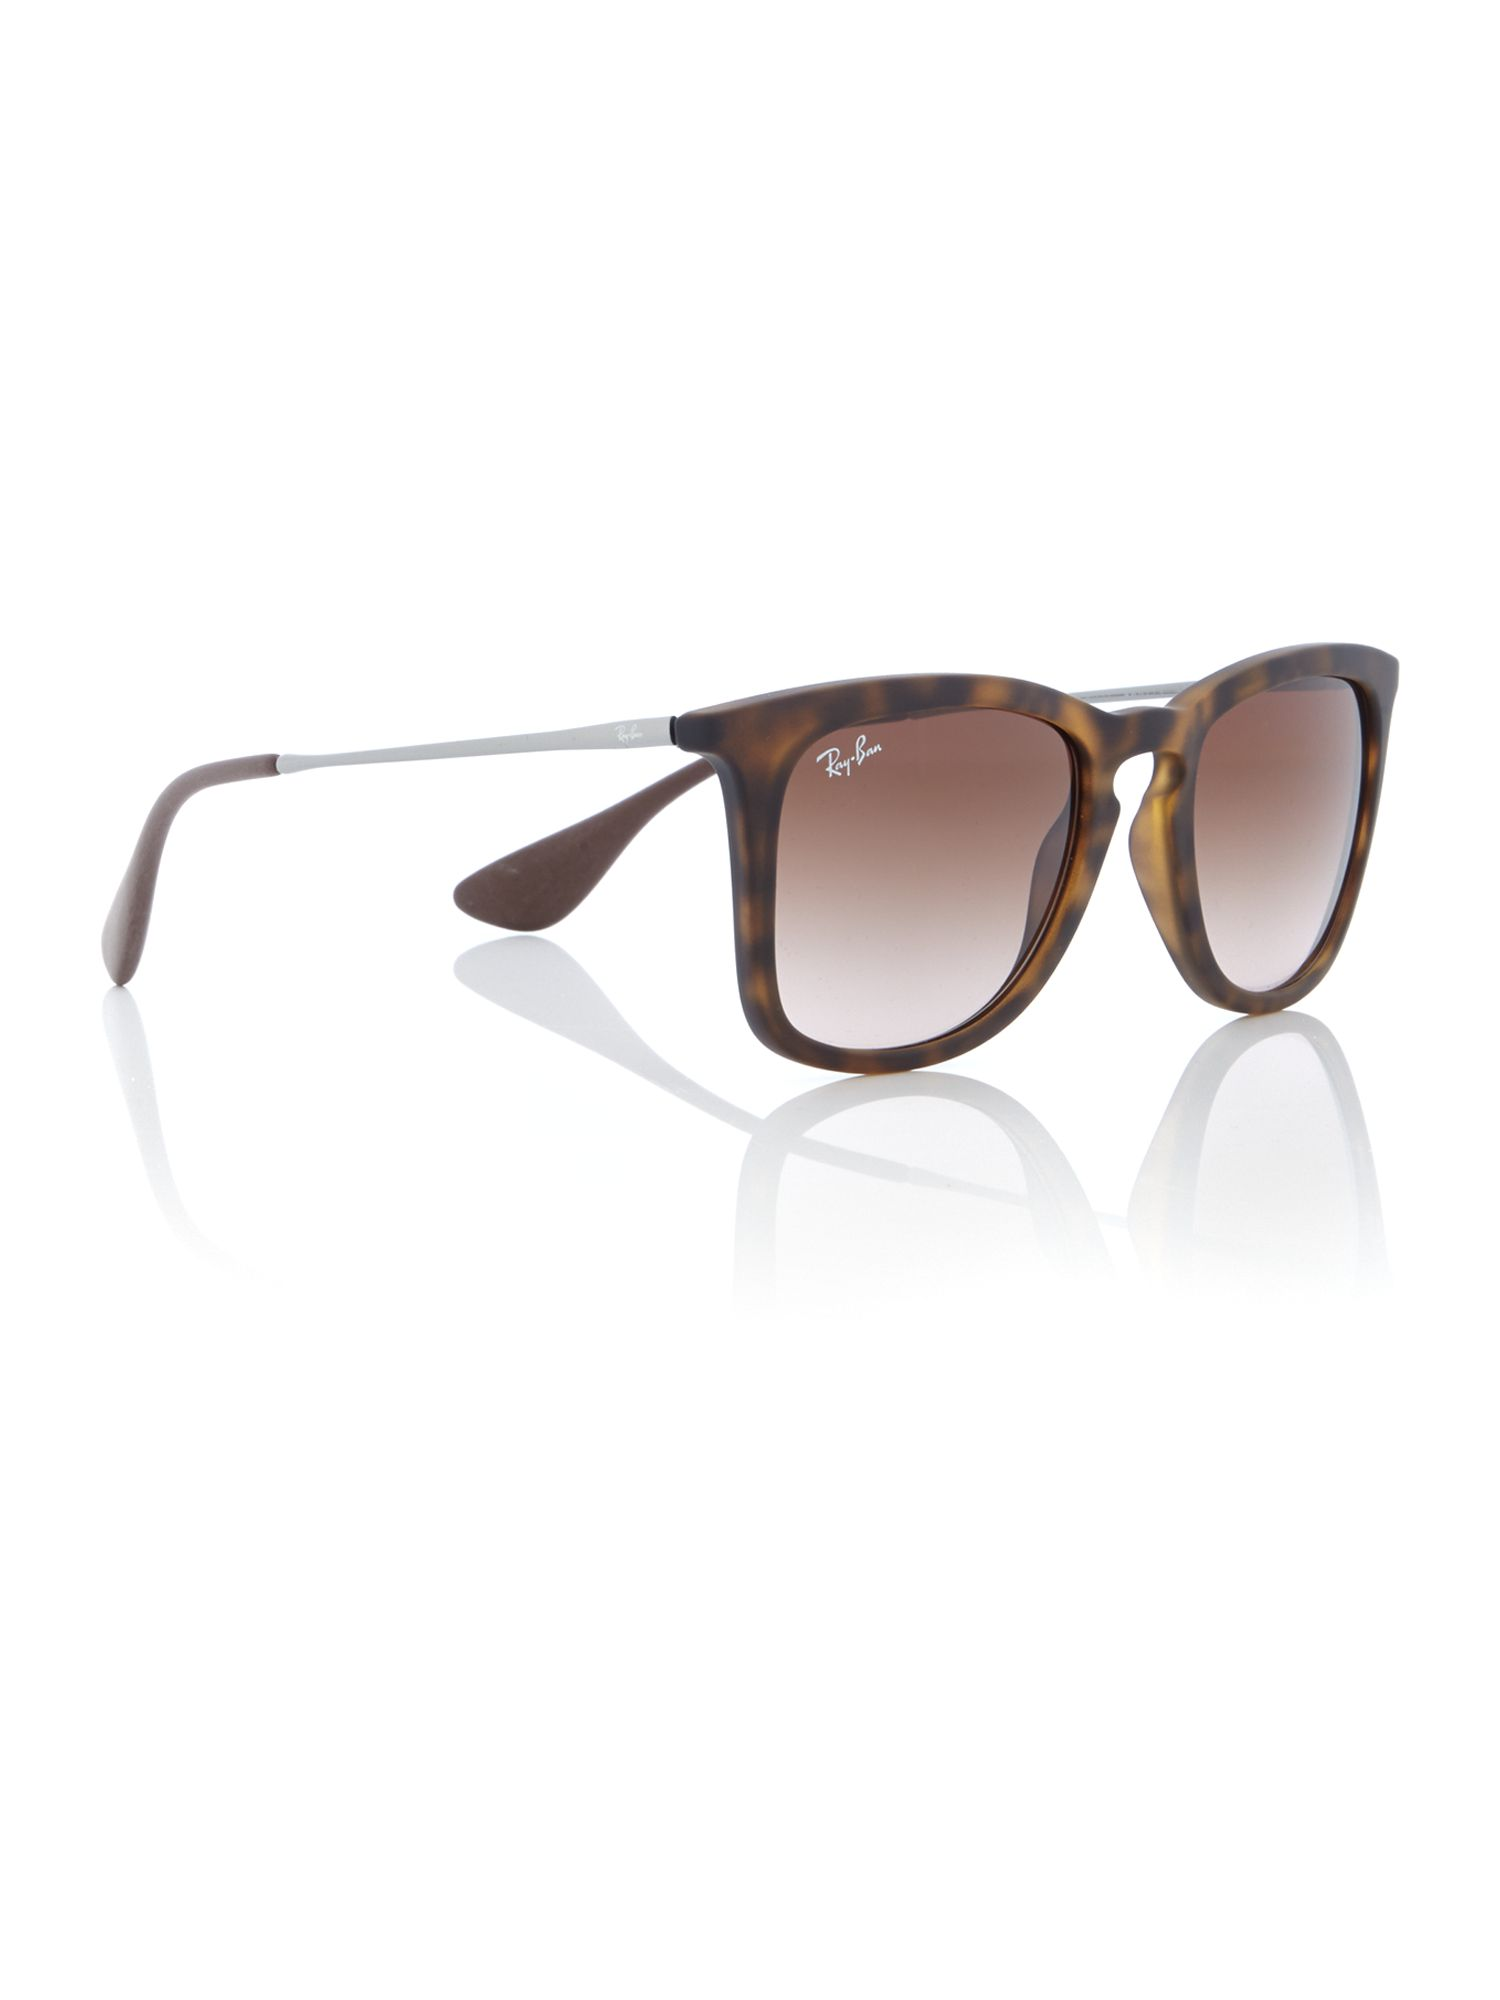 Ray ban wayfarers house of fraser for Housse of fraser